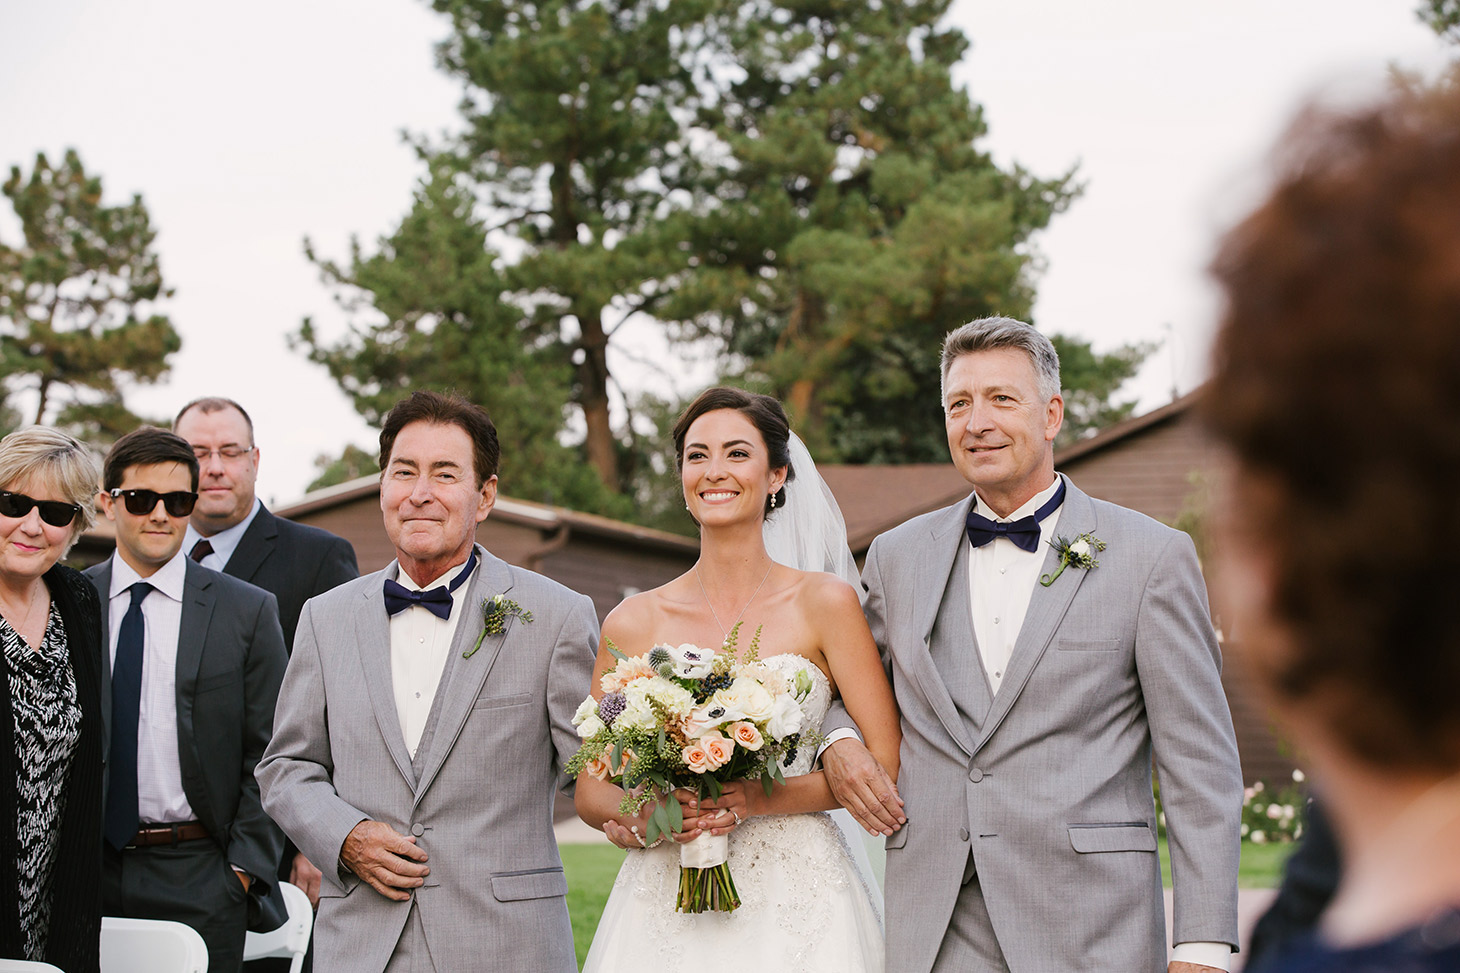 Megan-Newton-Photography-Best-Wedding-Photos-2015-049